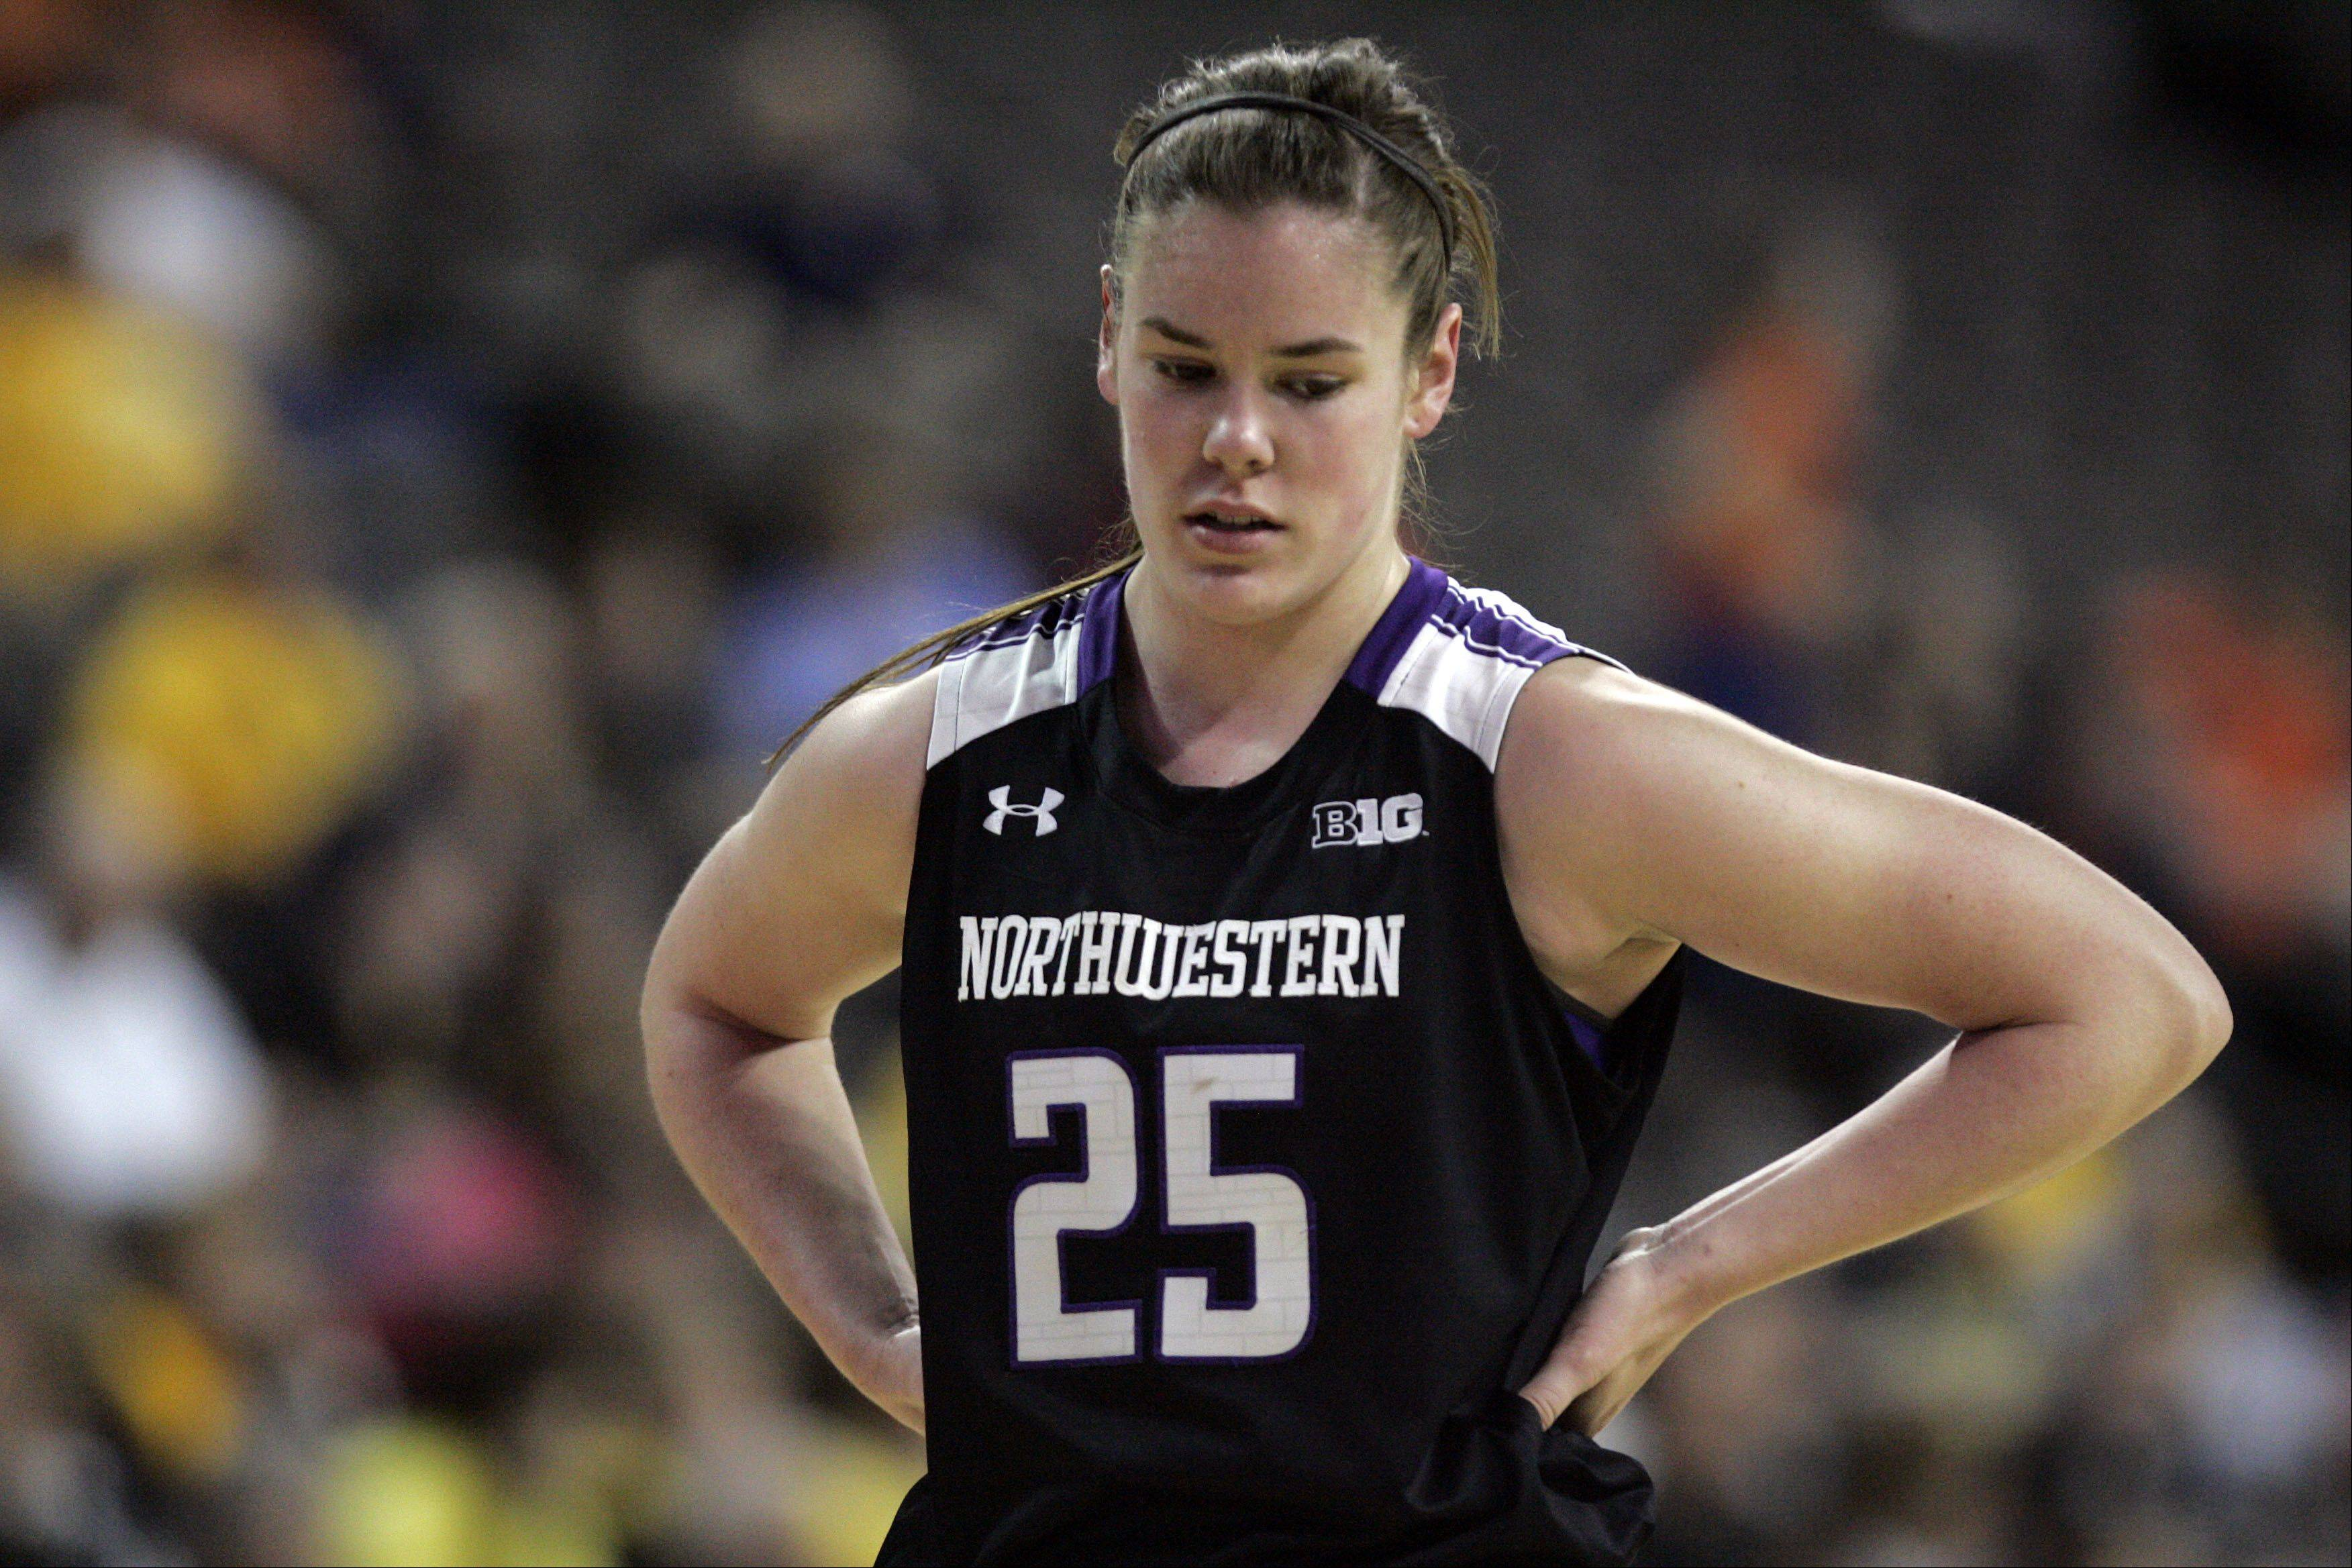 Northwestern Wildcats forward Maggie Lyon, the Big Ten's freshman of the year, reacts as time winds down at the Big Ten Women's Basketball Tournament at the Sears Centre in Hoffman Estates. Iowa defeated Northwestern 60-55 to advance.